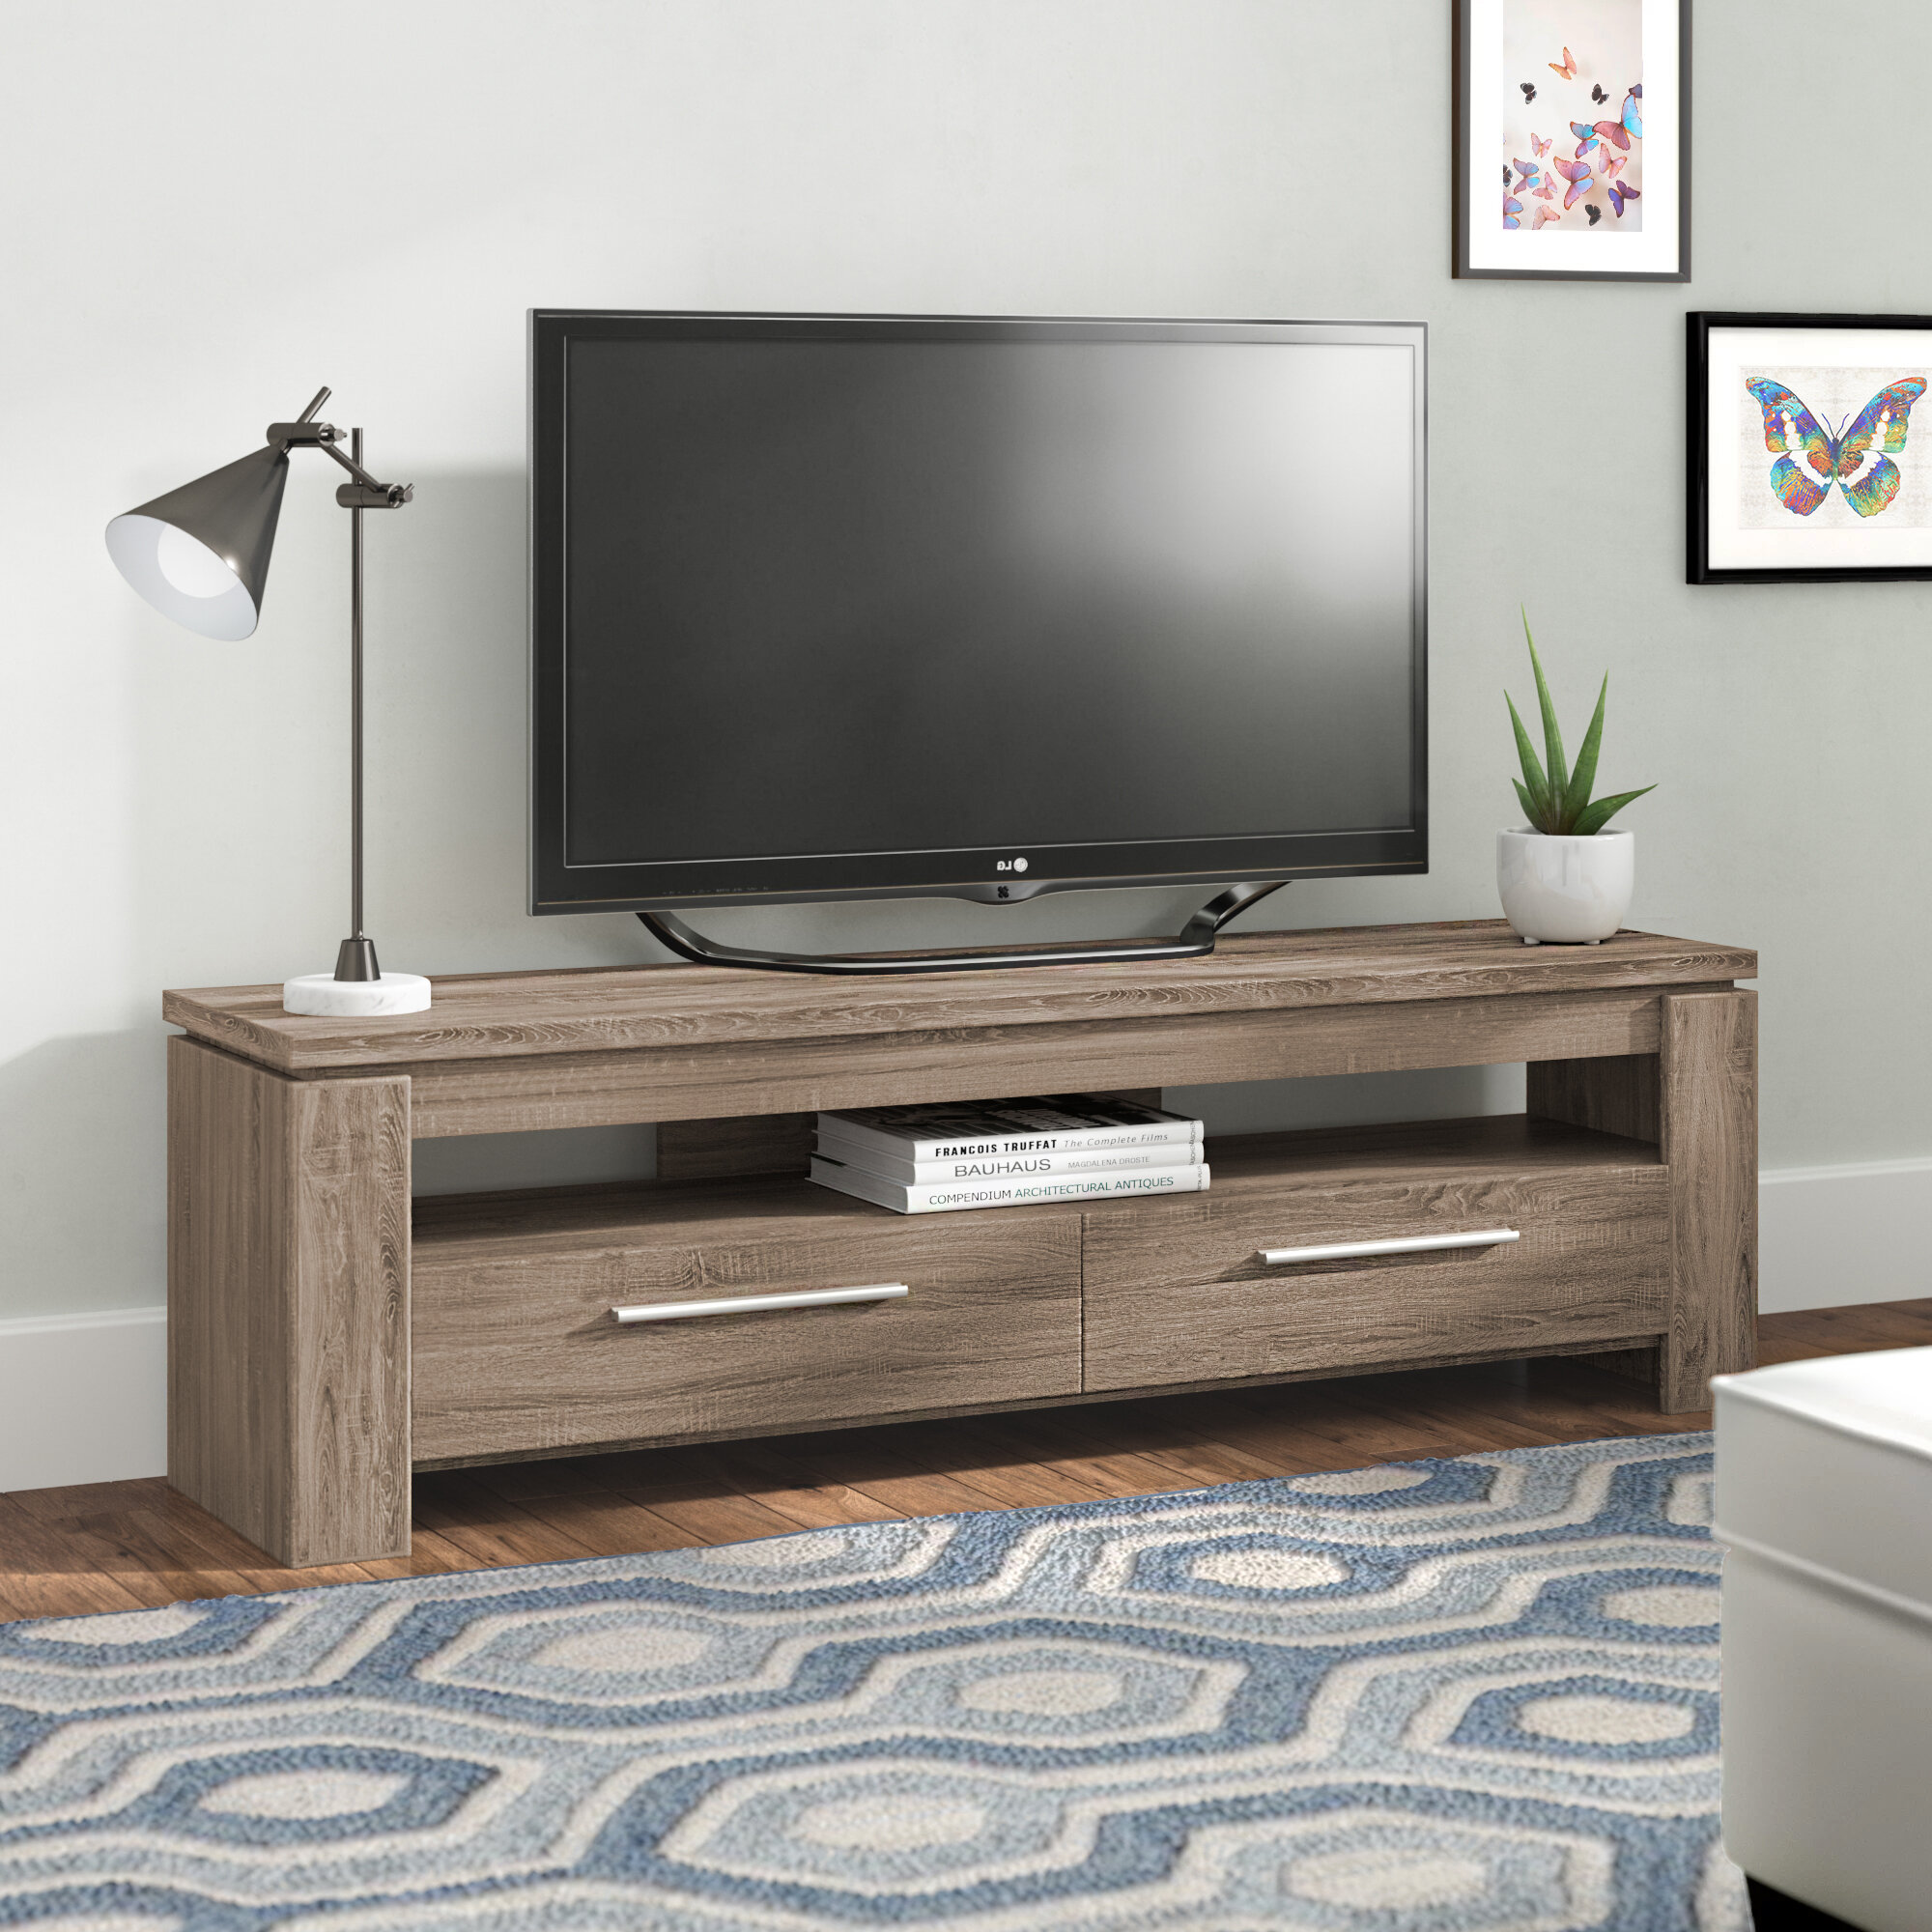 All Wood Tv Stand 48 Inches Wwwtollebildcom